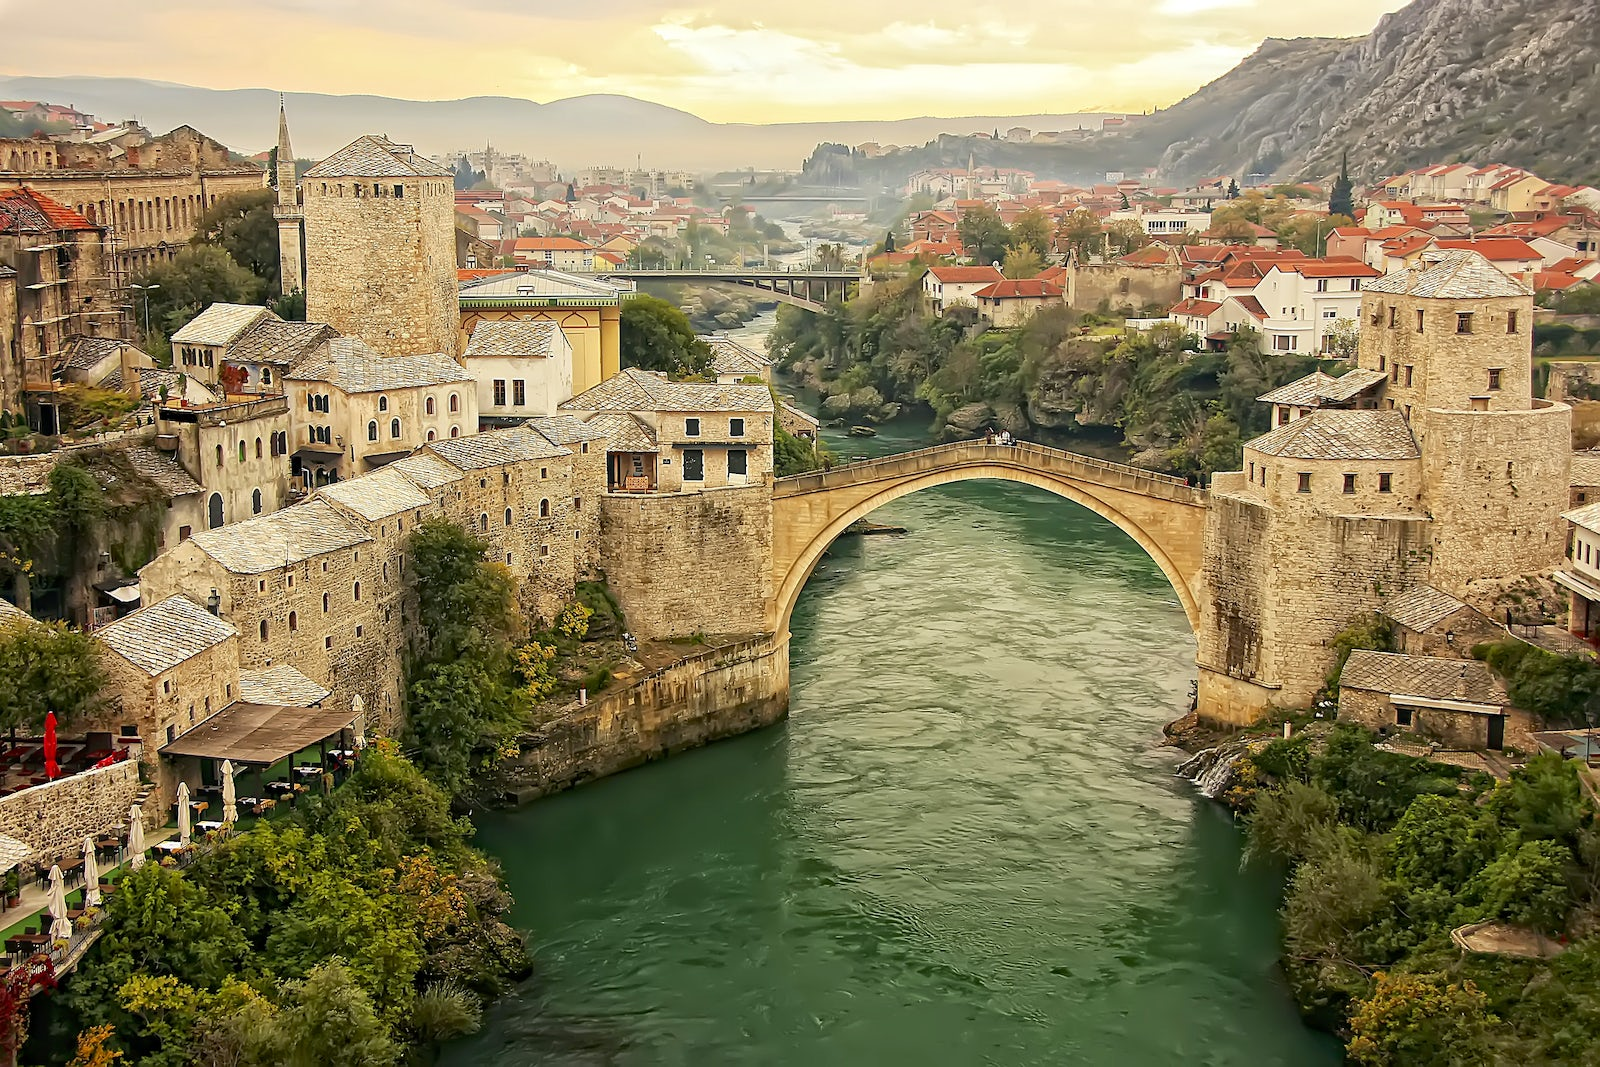 !i18n:de:data.cities:mostar.picture.caption